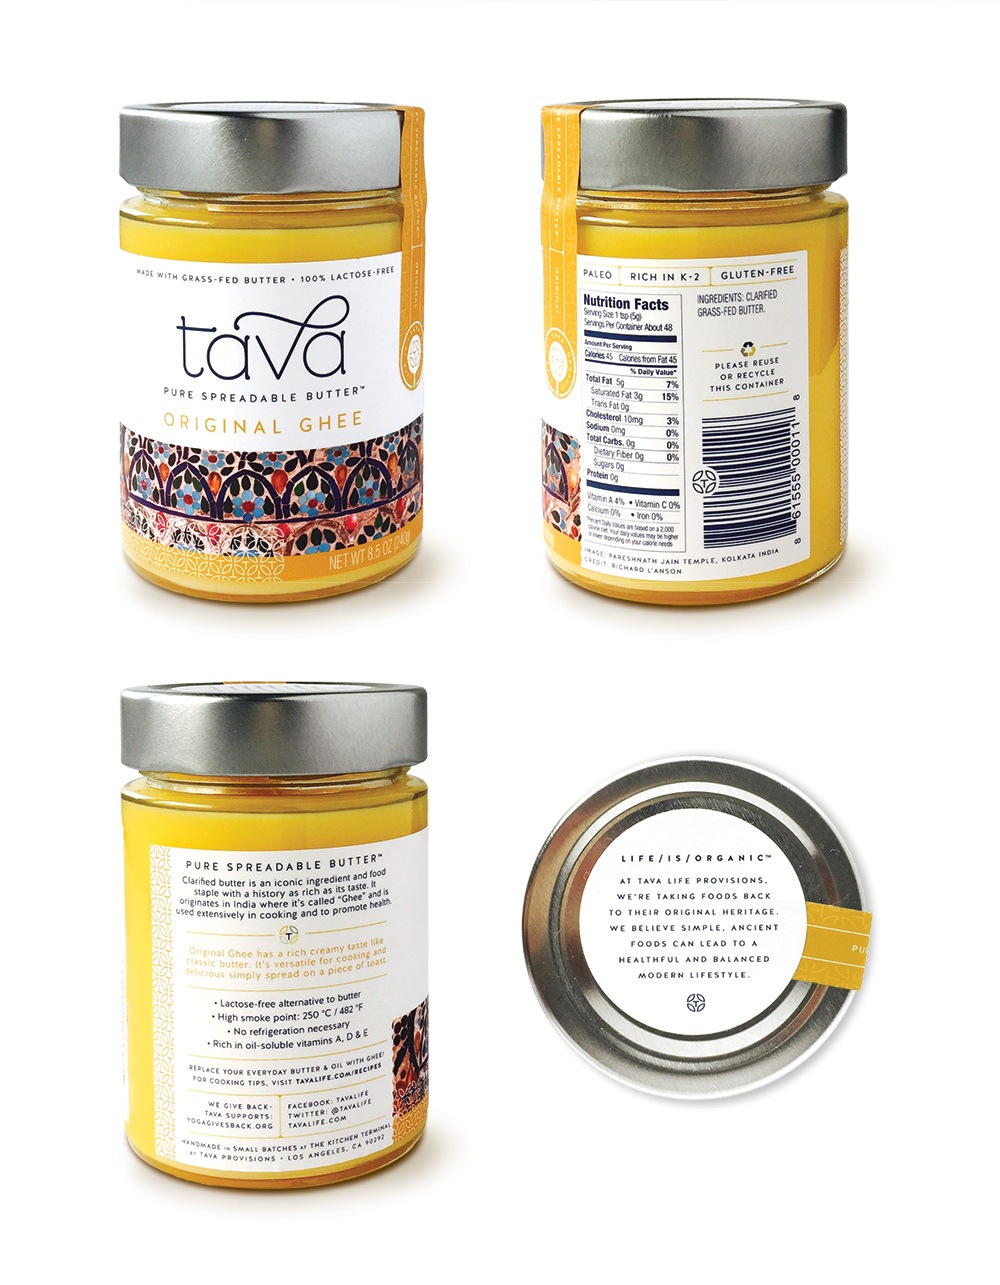 Tava Jars - Alternate Views Packaging Design